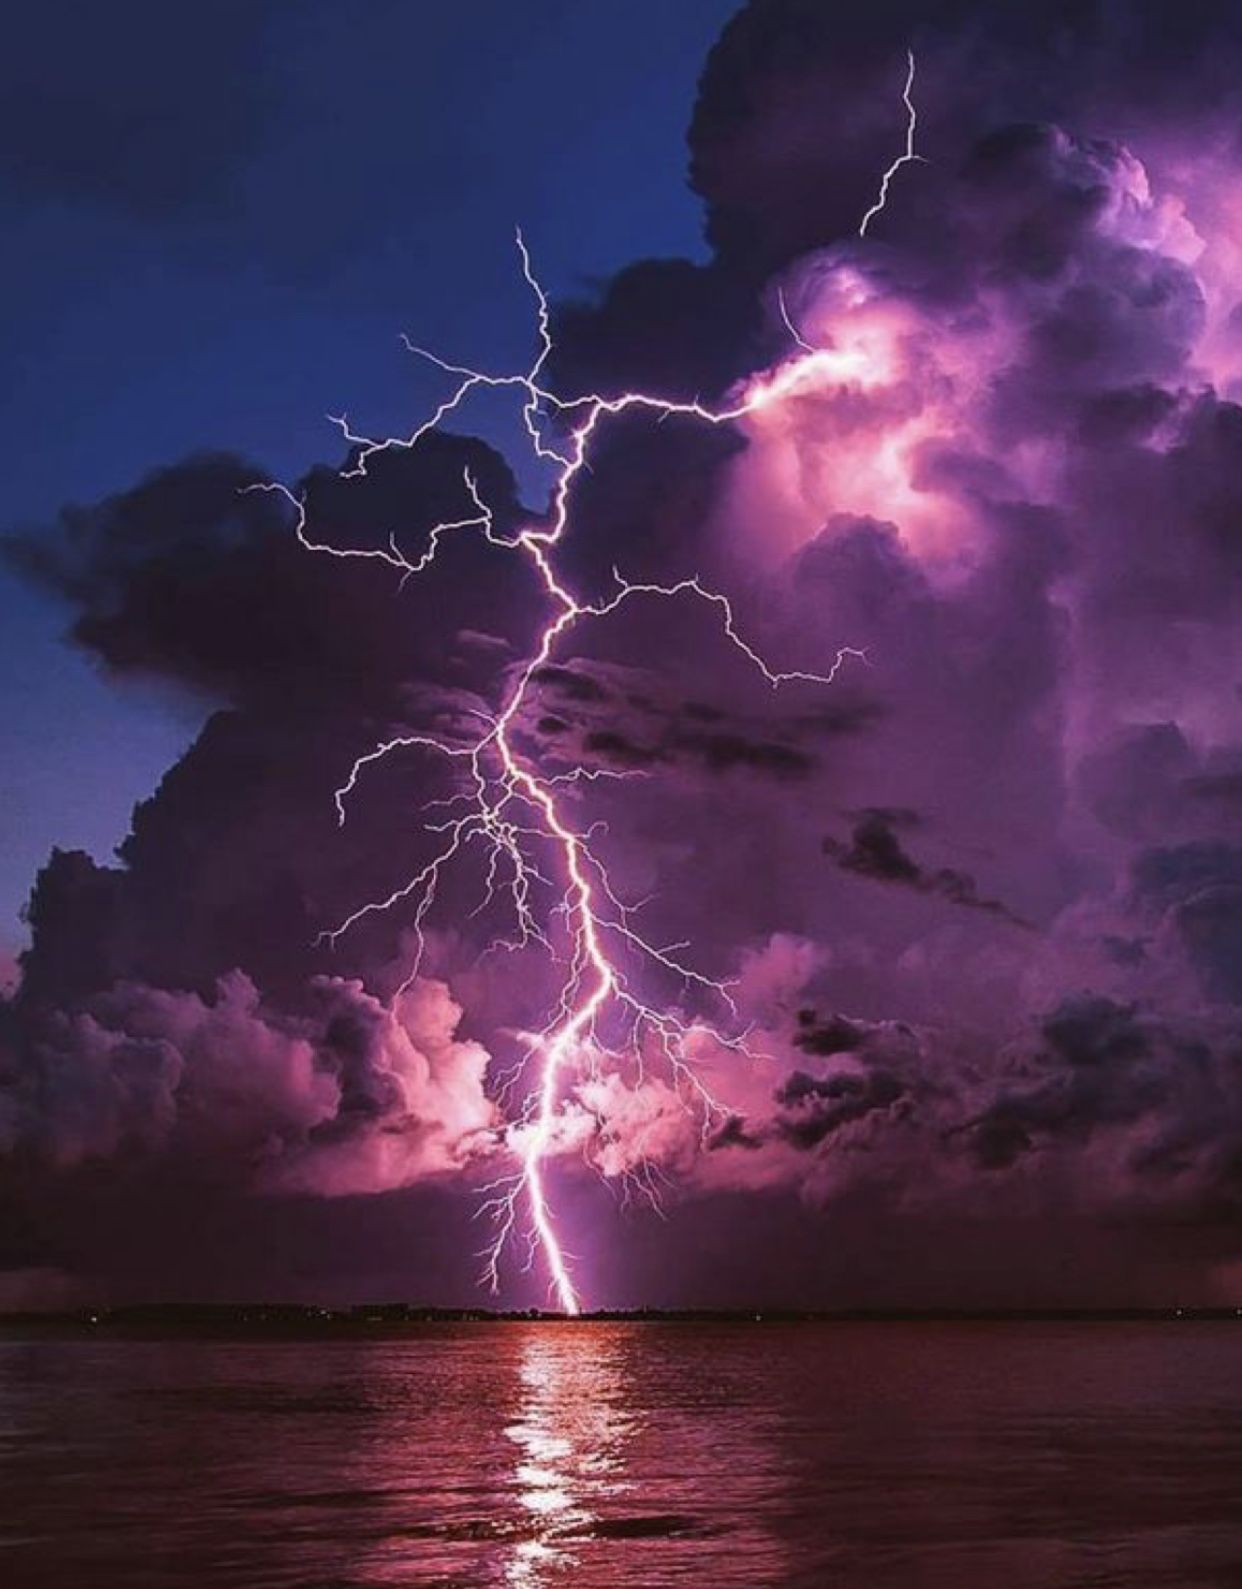 Pin By Carman Johnson On Nature Lightning Photography Storm Wallpaper Storm Art